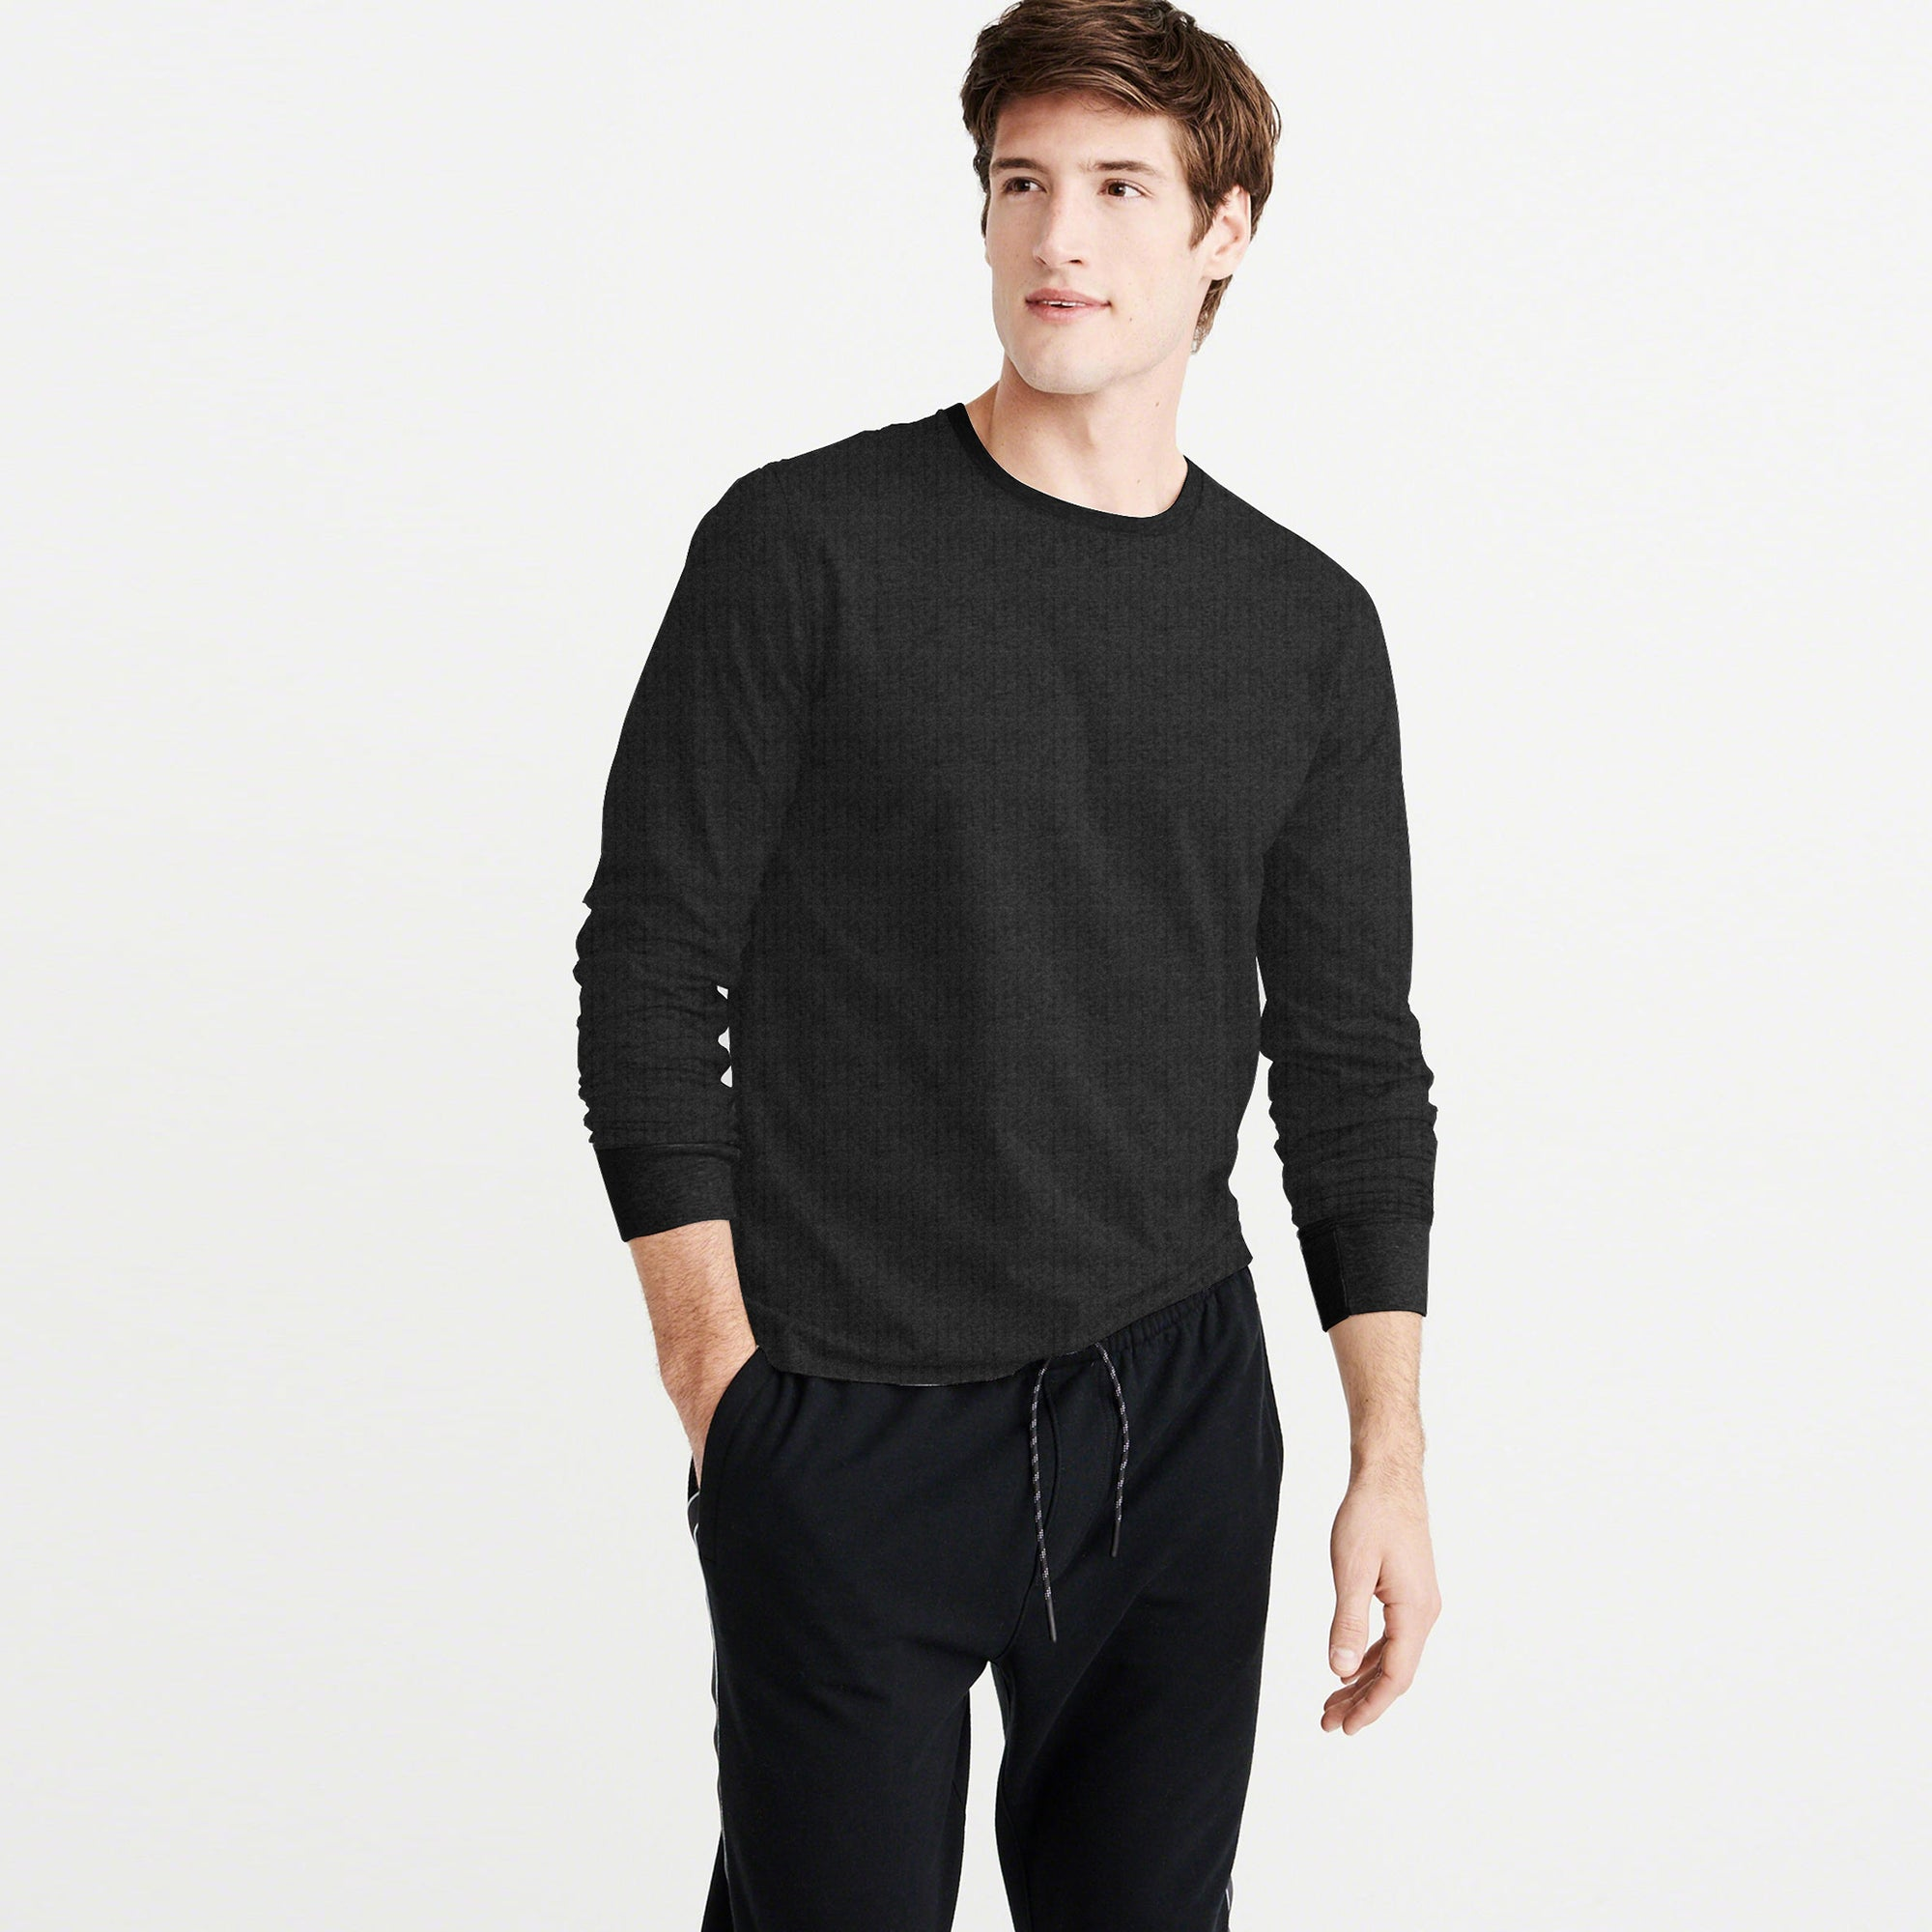 brandsego - USF Thermal Long Sleeve Tee Shirt For Men-Dark Charcoal-NA6069